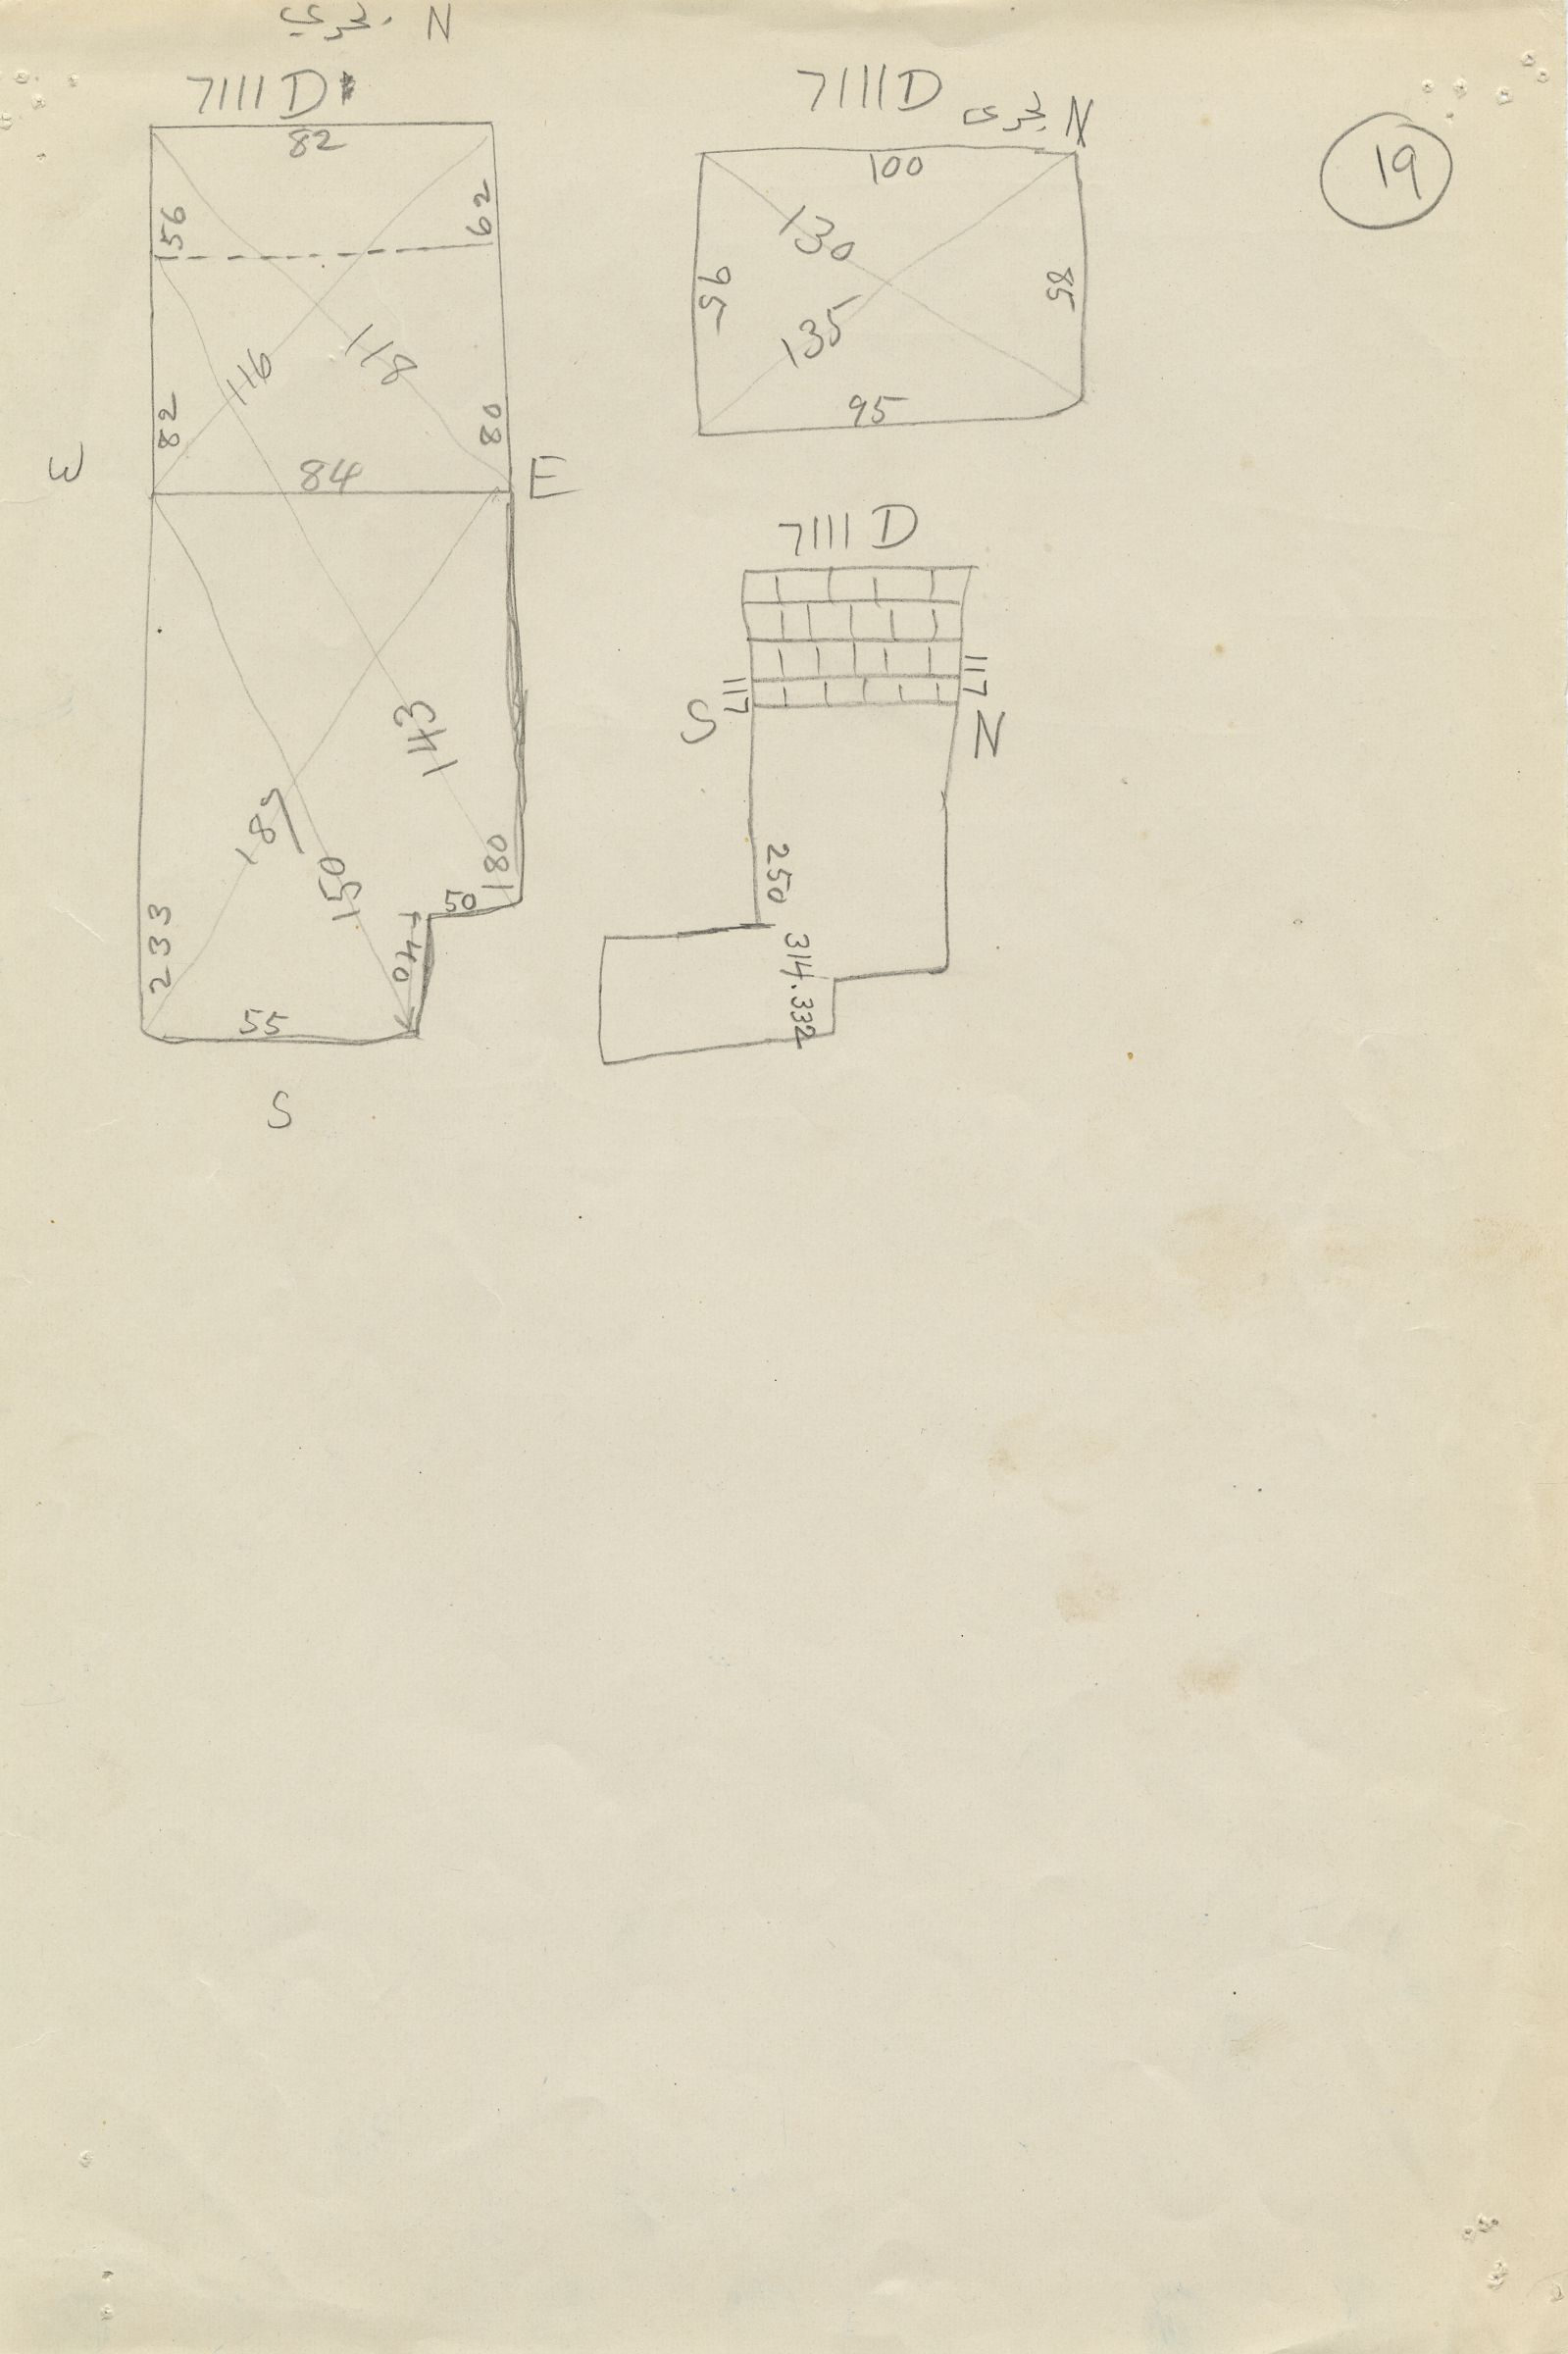 Maps and plans: G 7111, Shaft D